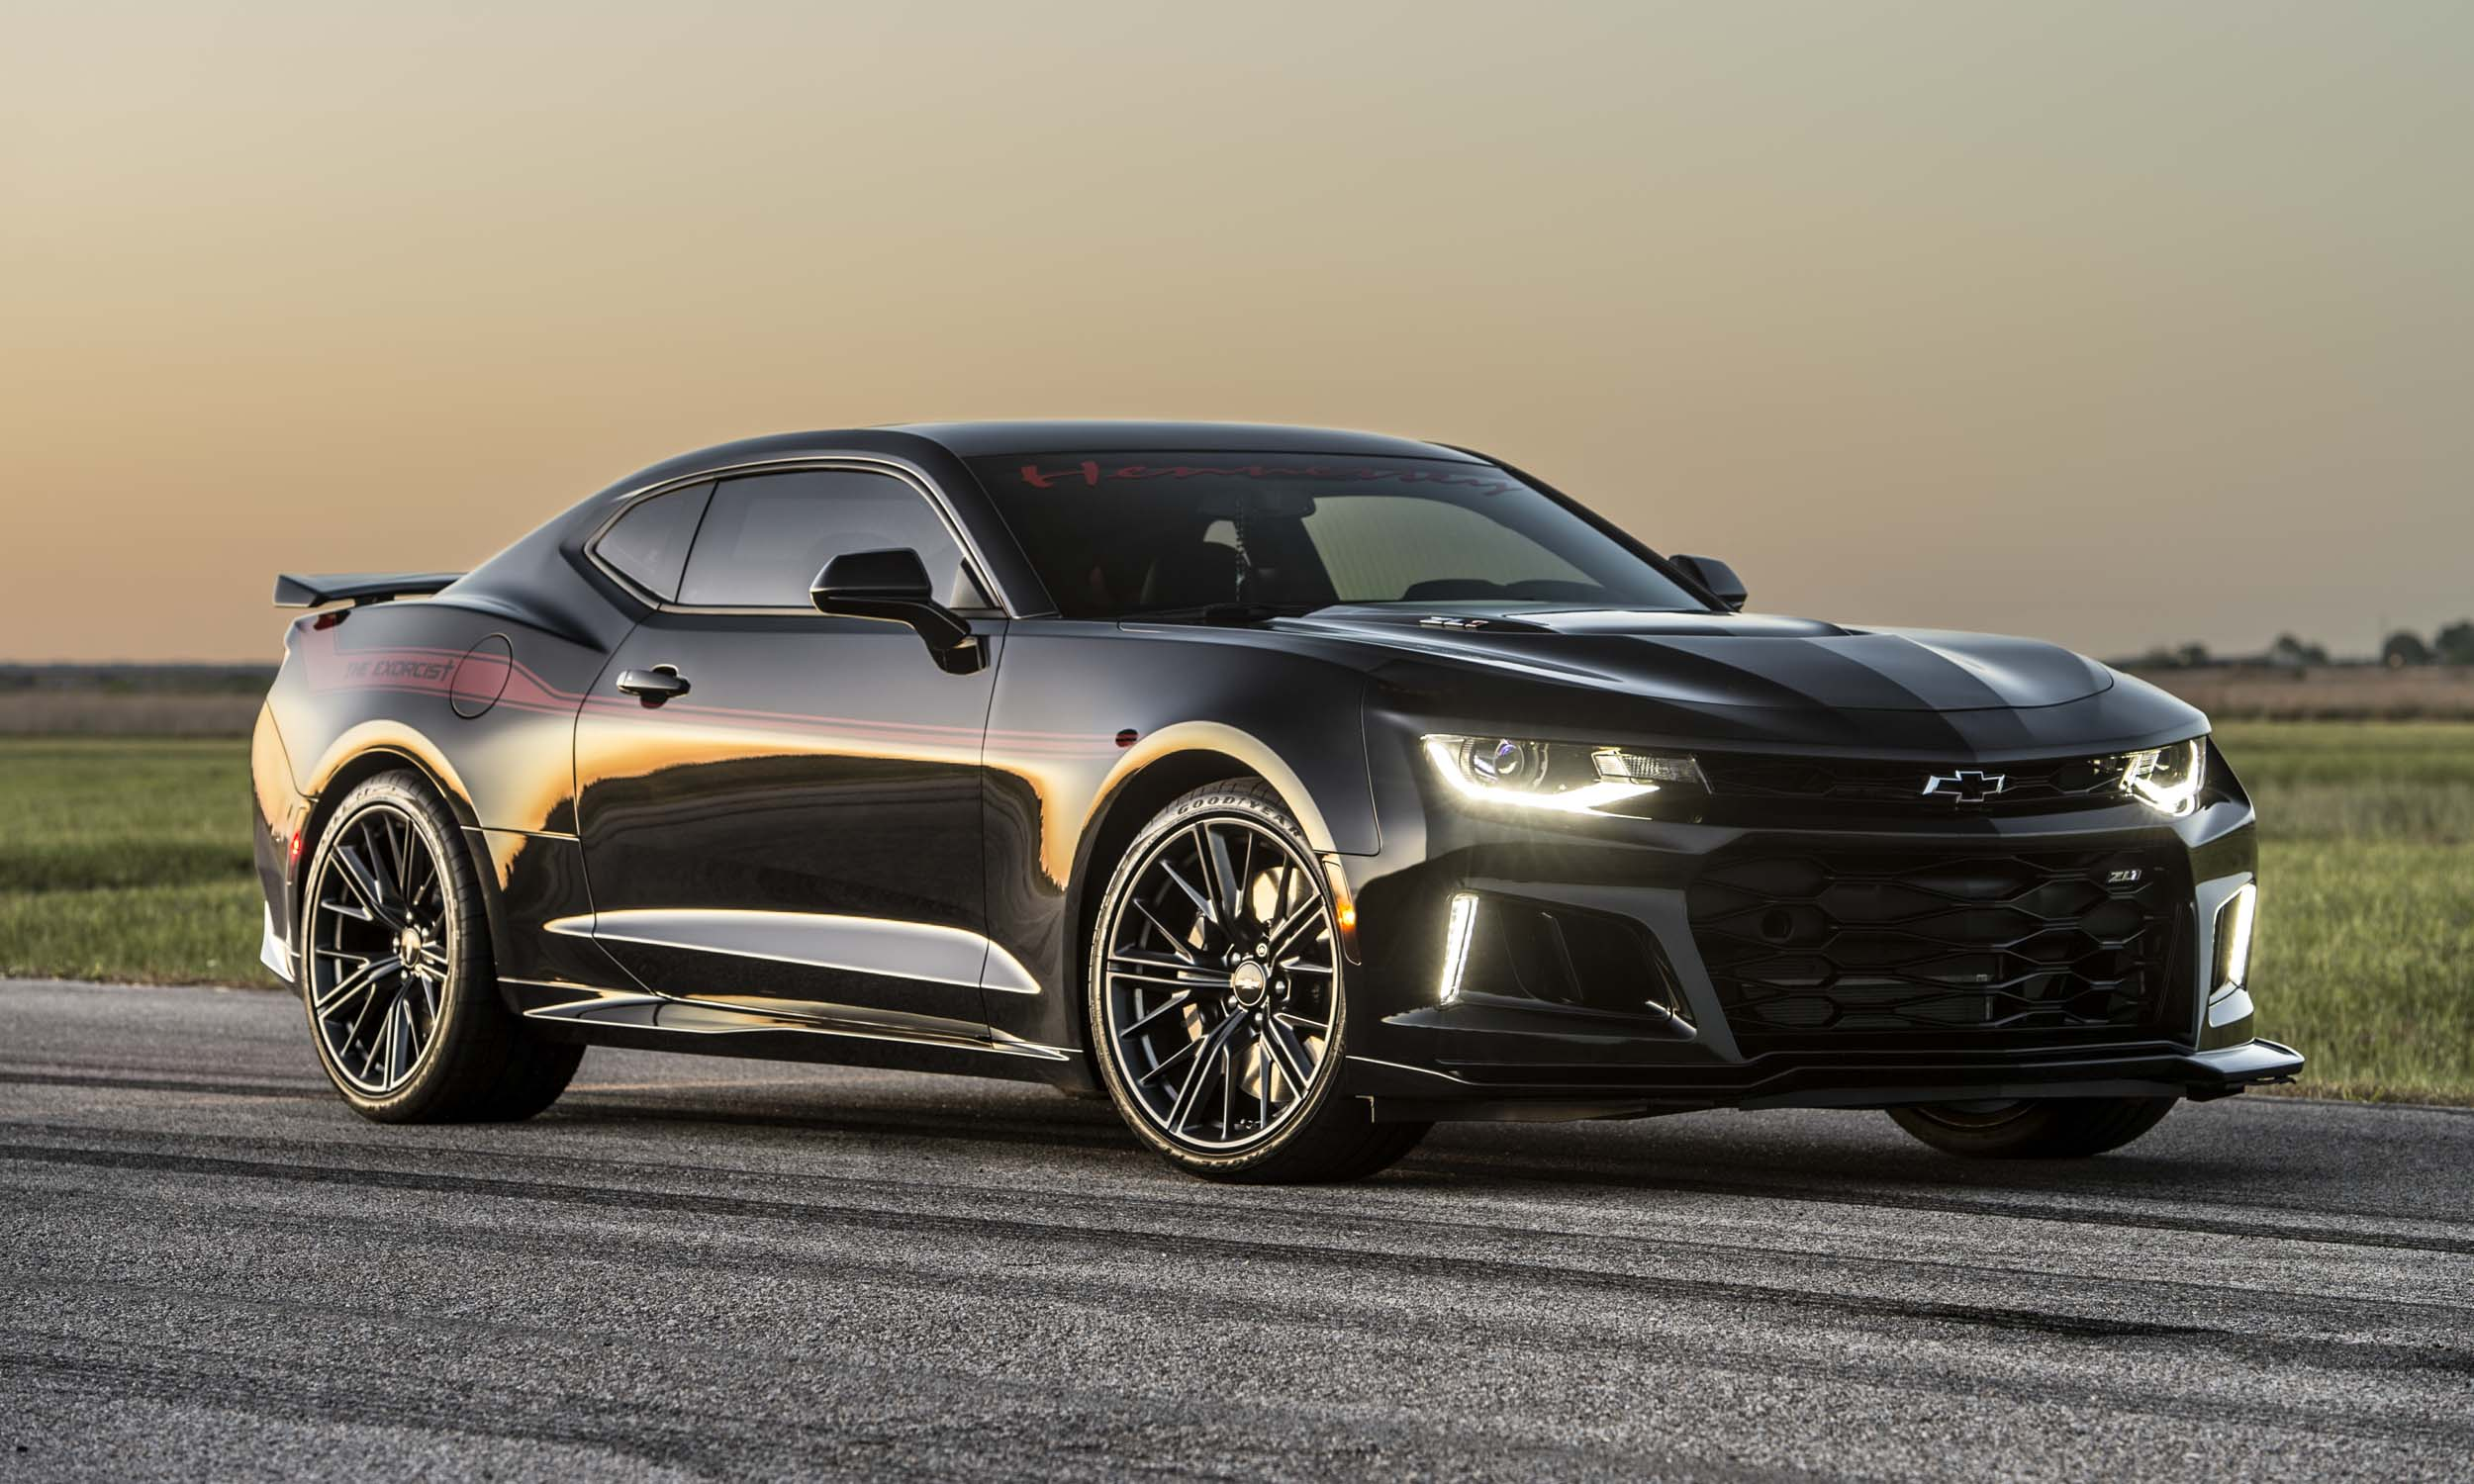 A 1000-Horsepower Camaro? Hennessey Builds That (And More)